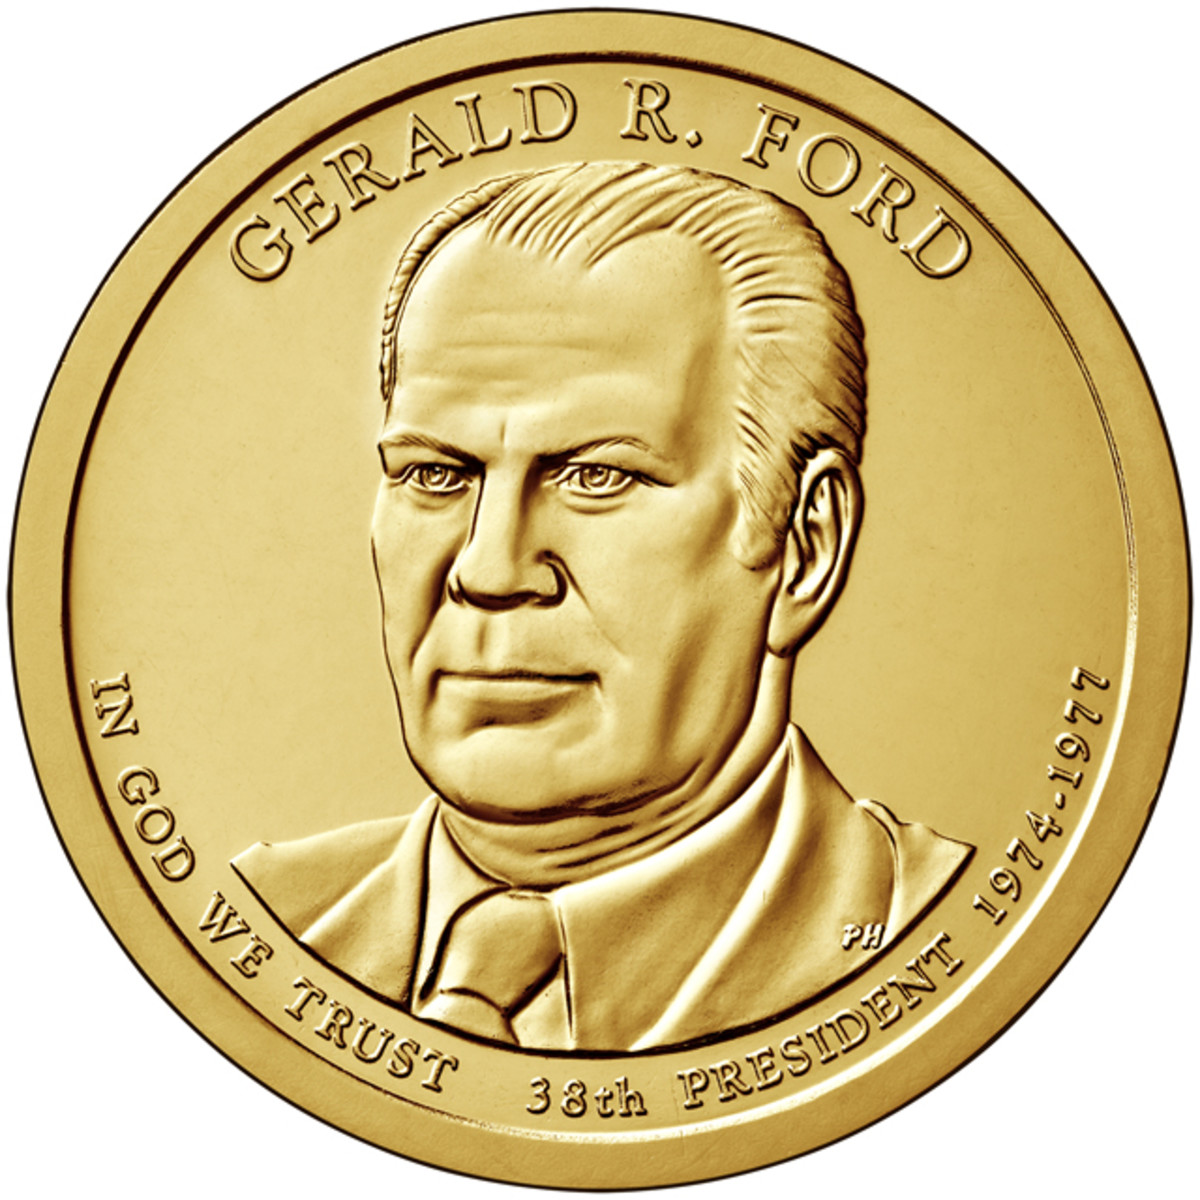 Obverse of the Ford Presidential dollar.